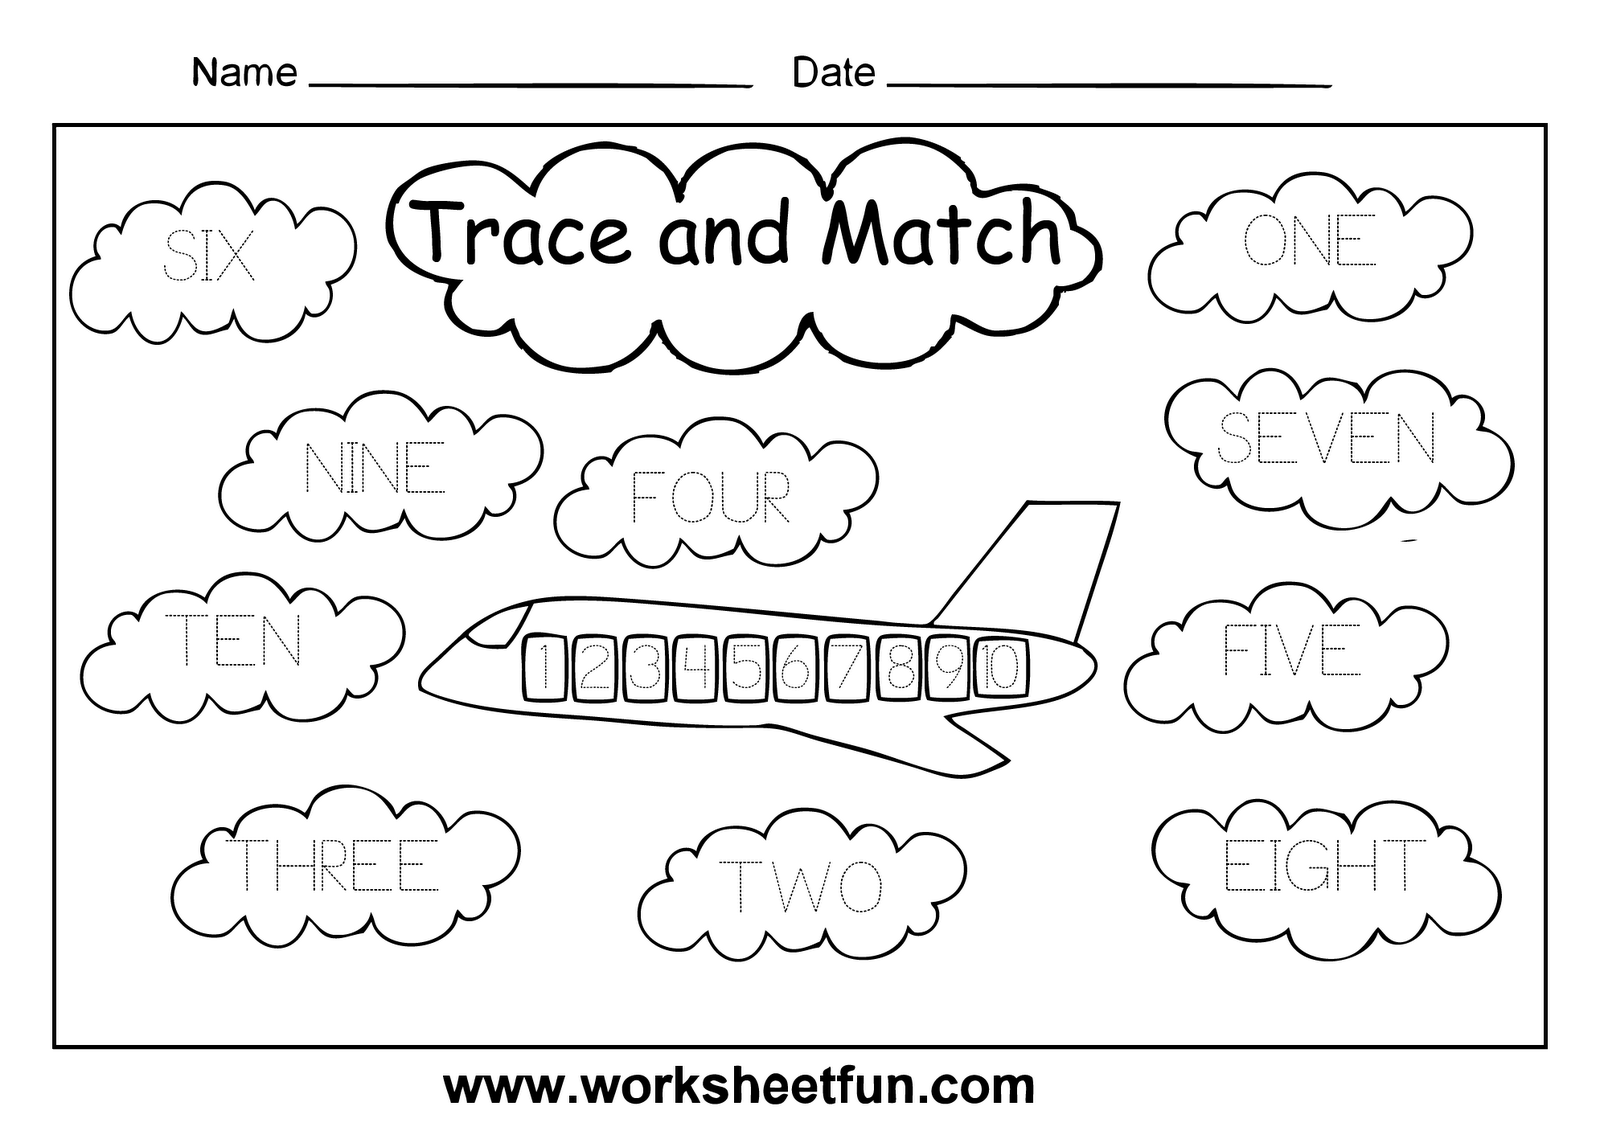 Weirdmailus  Seductive Worksheet Numbers    Reocurent With Excellent Spanish Verb Worksheets Besides Multiplying Fractions By A Whole Number Worksheet Furthermore Pronunciation Worksheets With Awesome Qu Worksheets Also Shapes And Colors Worksheets In Addition Solving Equations By Combining Like Terms Worksheet And Relapse Triggers Worksheet As Well As Direct And Indirect Variation Worksheet Additionally Free Printable Second Grade Math Worksheets From Reocurentcom With Weirdmailus  Excellent Worksheet Numbers    Reocurent With Awesome Spanish Verb Worksheets Besides Multiplying Fractions By A Whole Number Worksheet Furthermore Pronunciation Worksheets And Seductive Qu Worksheets Also Shapes And Colors Worksheets In Addition Solving Equations By Combining Like Terms Worksheet From Reocurentcom